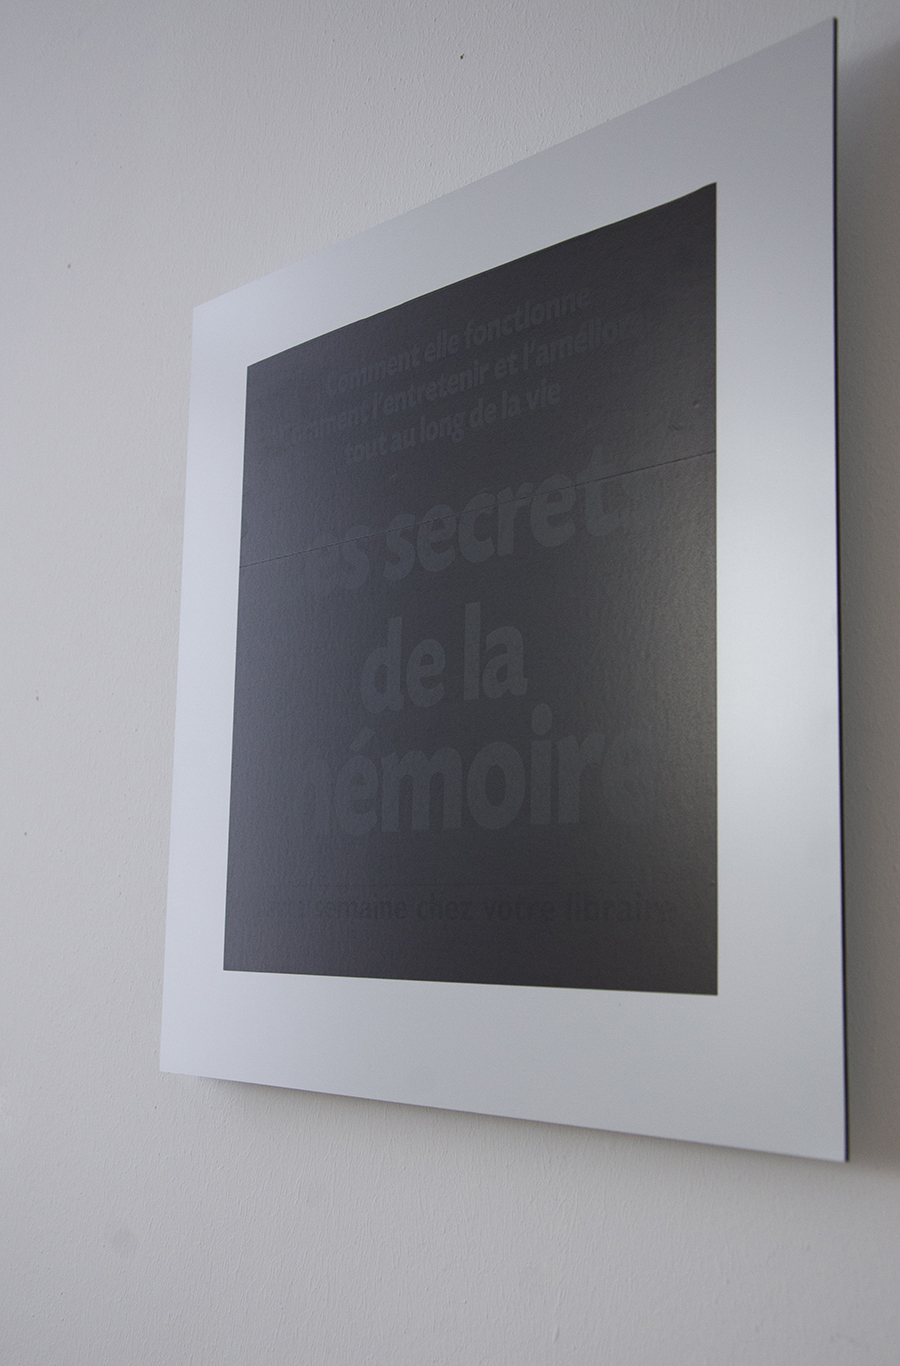 Willem Oorebeek -  Les secrets de la mémoire (2004) - P-screen (2008)